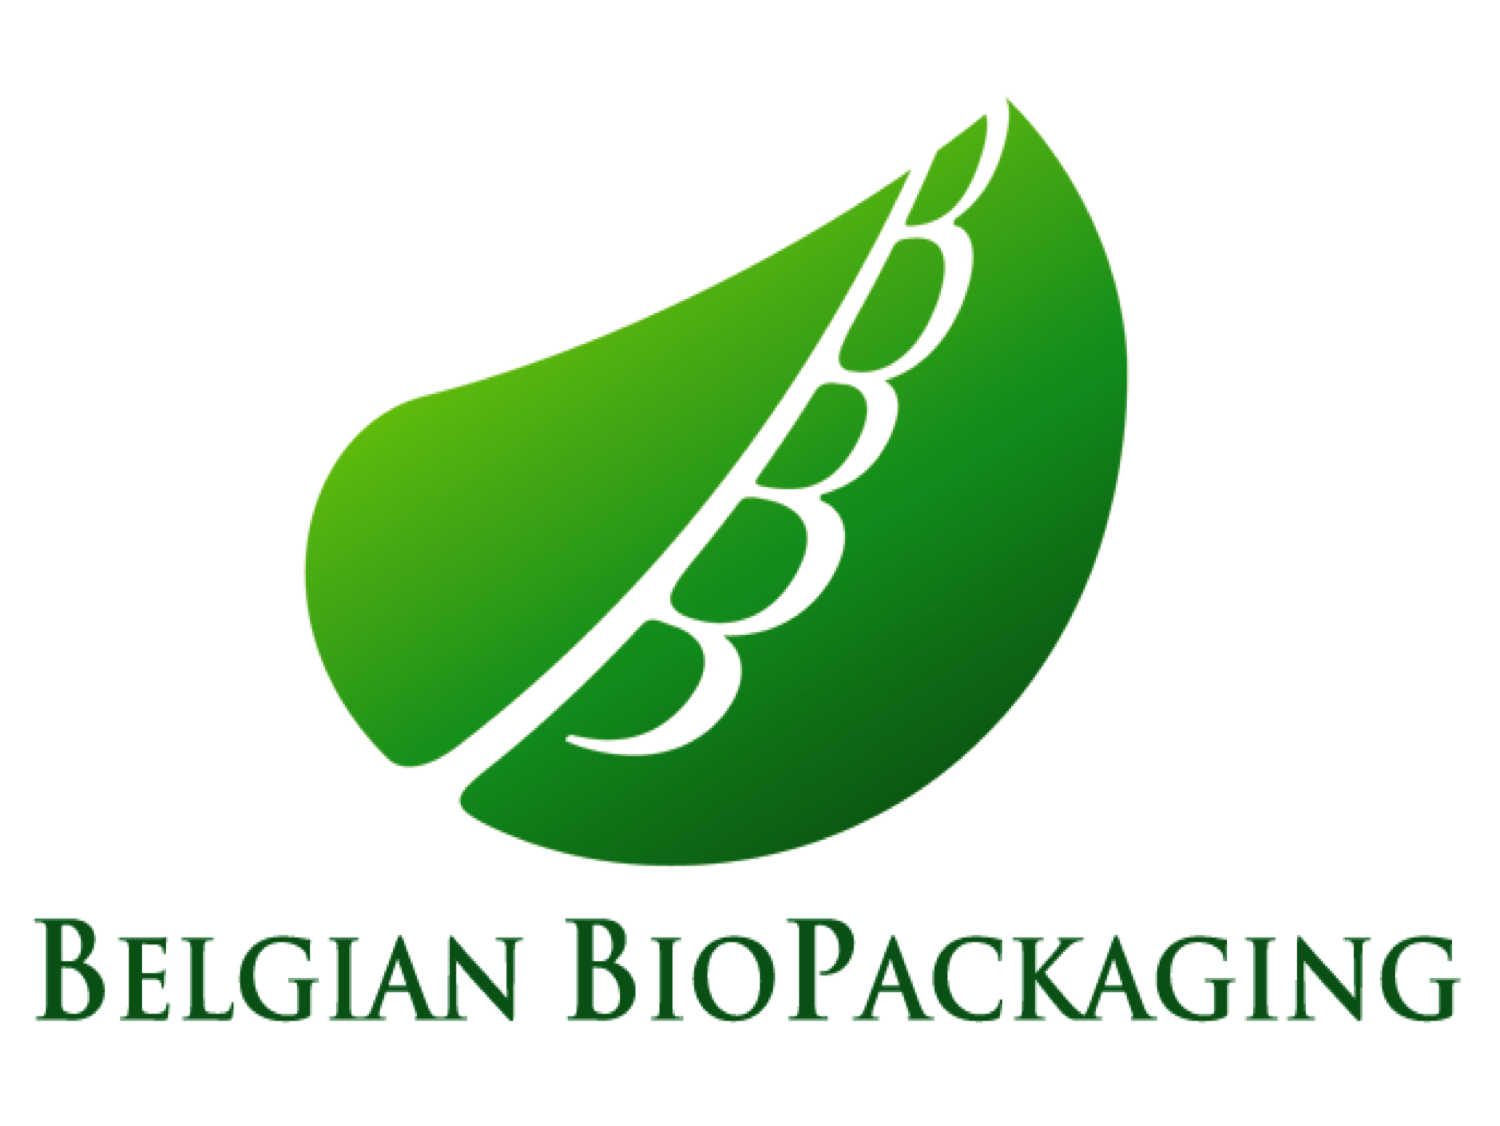 Belgian BioPackaging